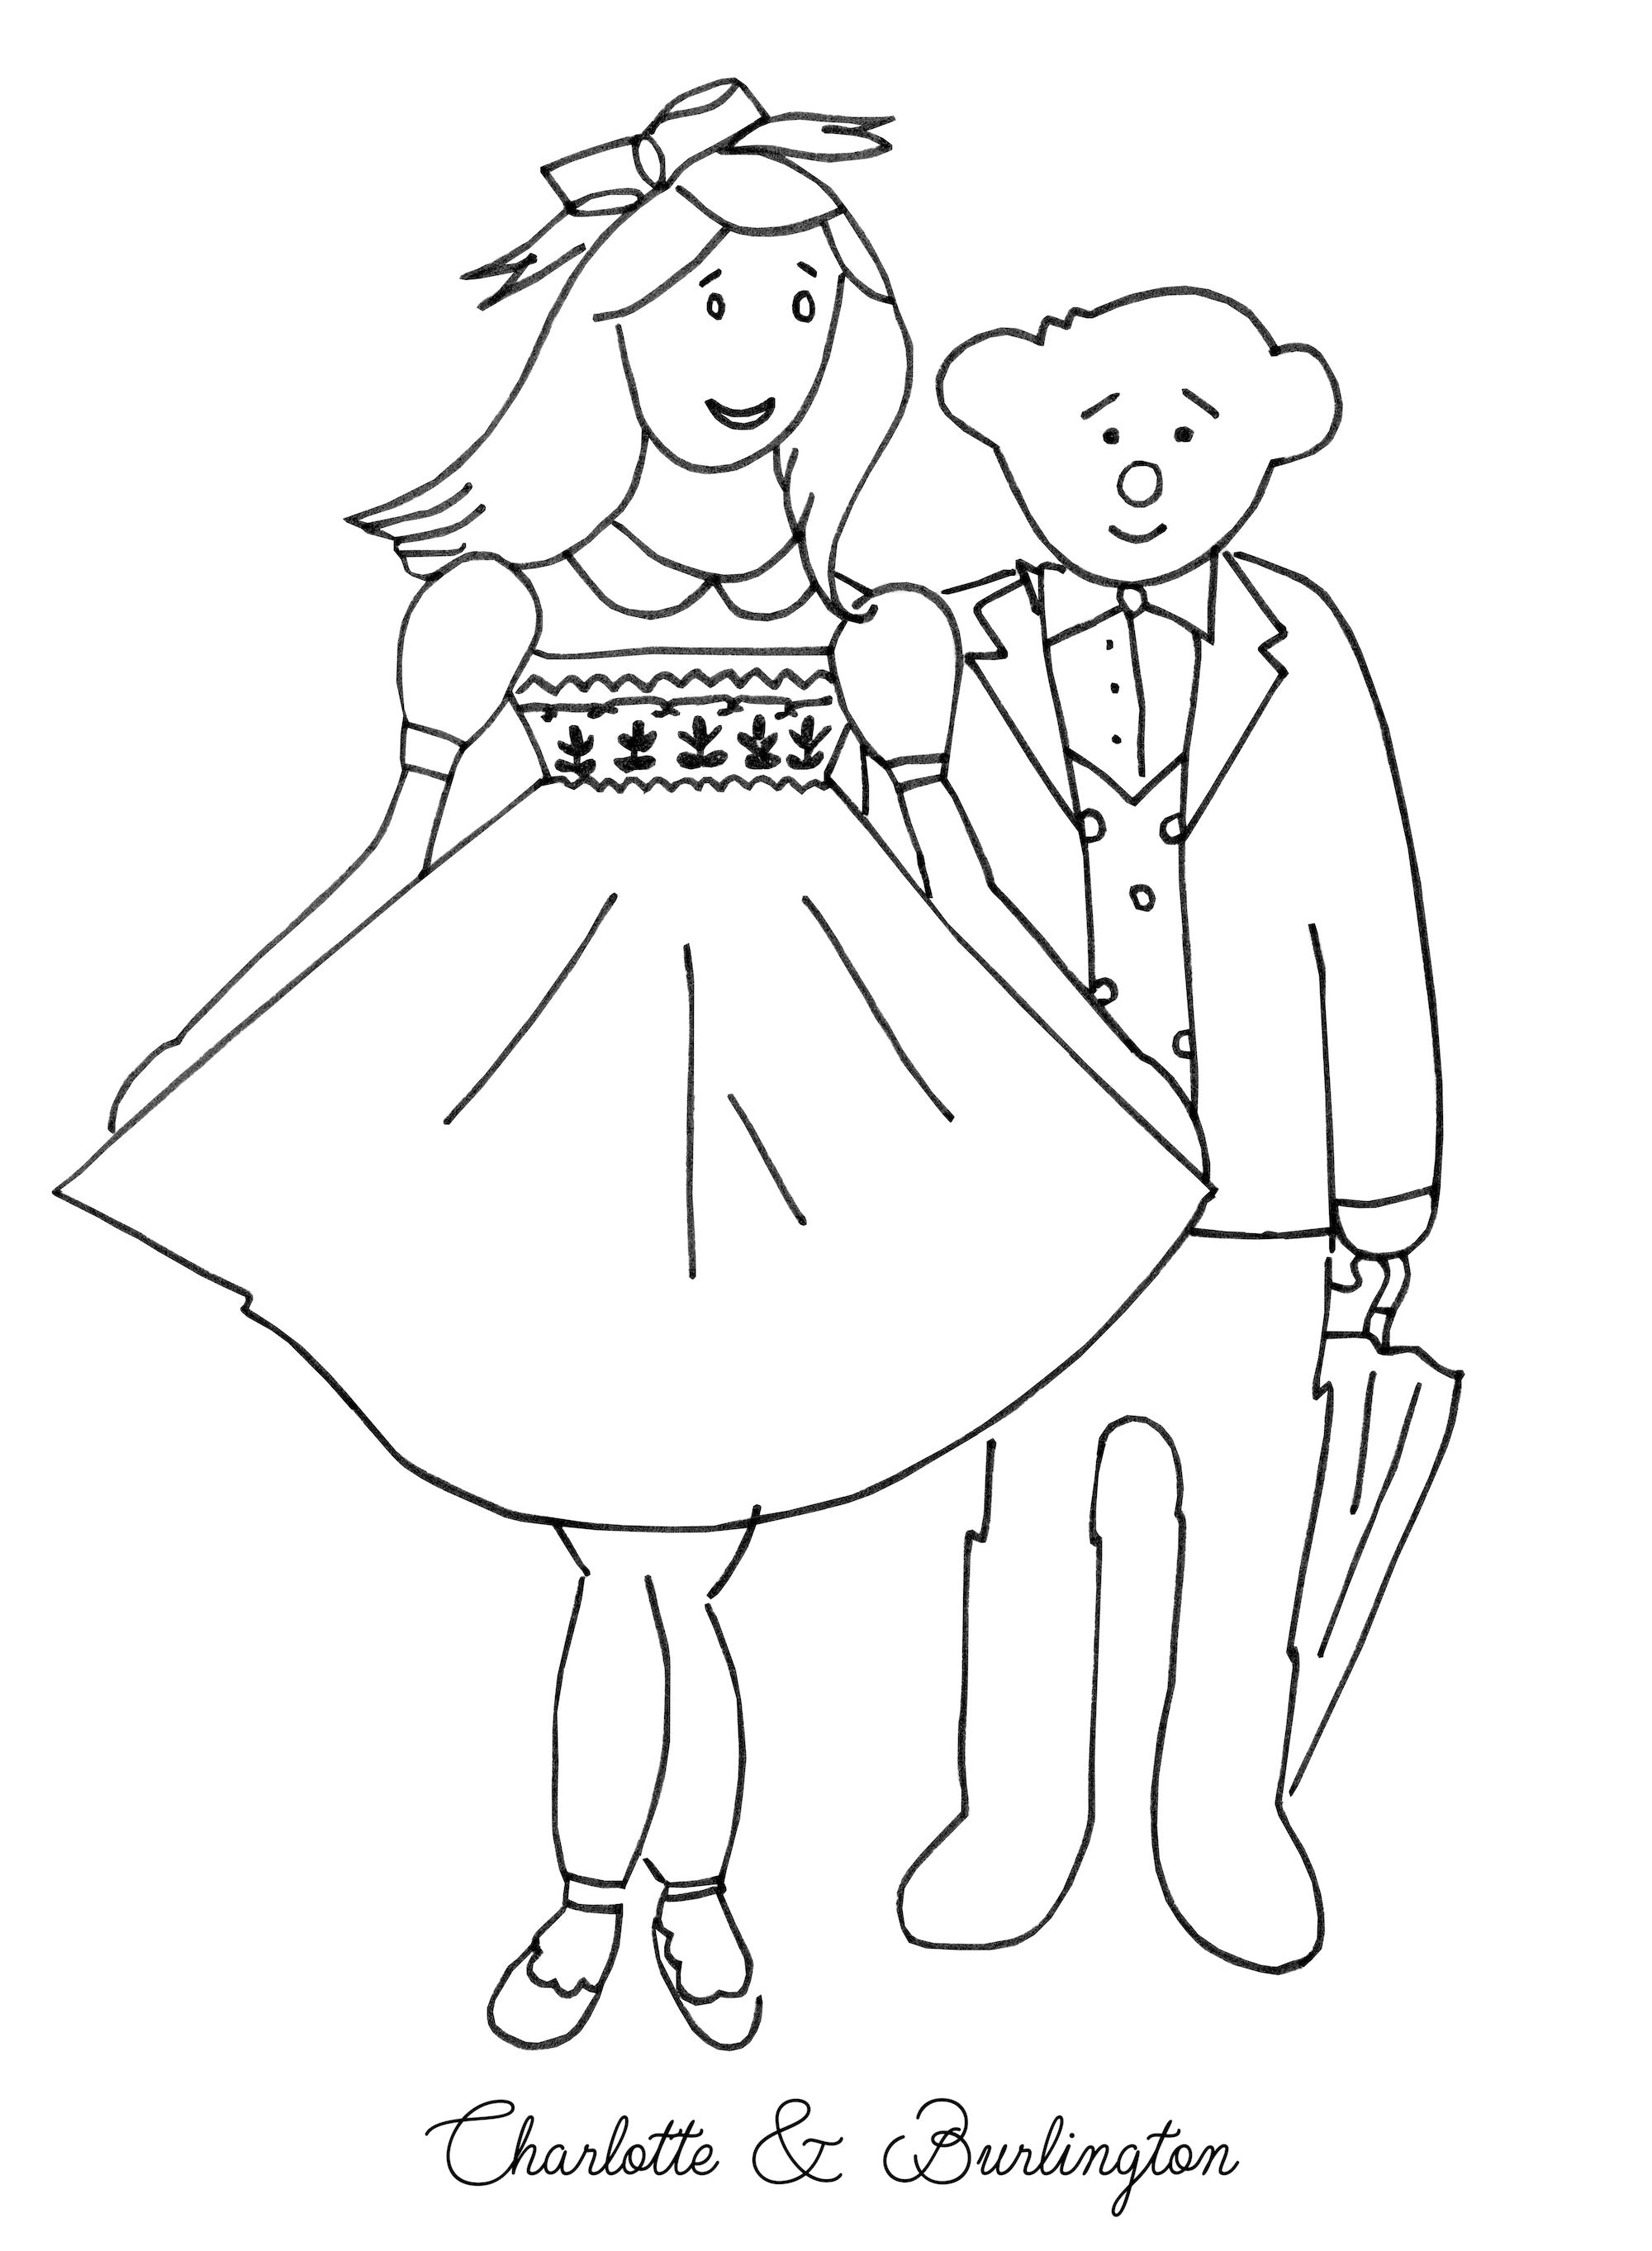 Free coloring for children Burlintgton bear and Charlotte